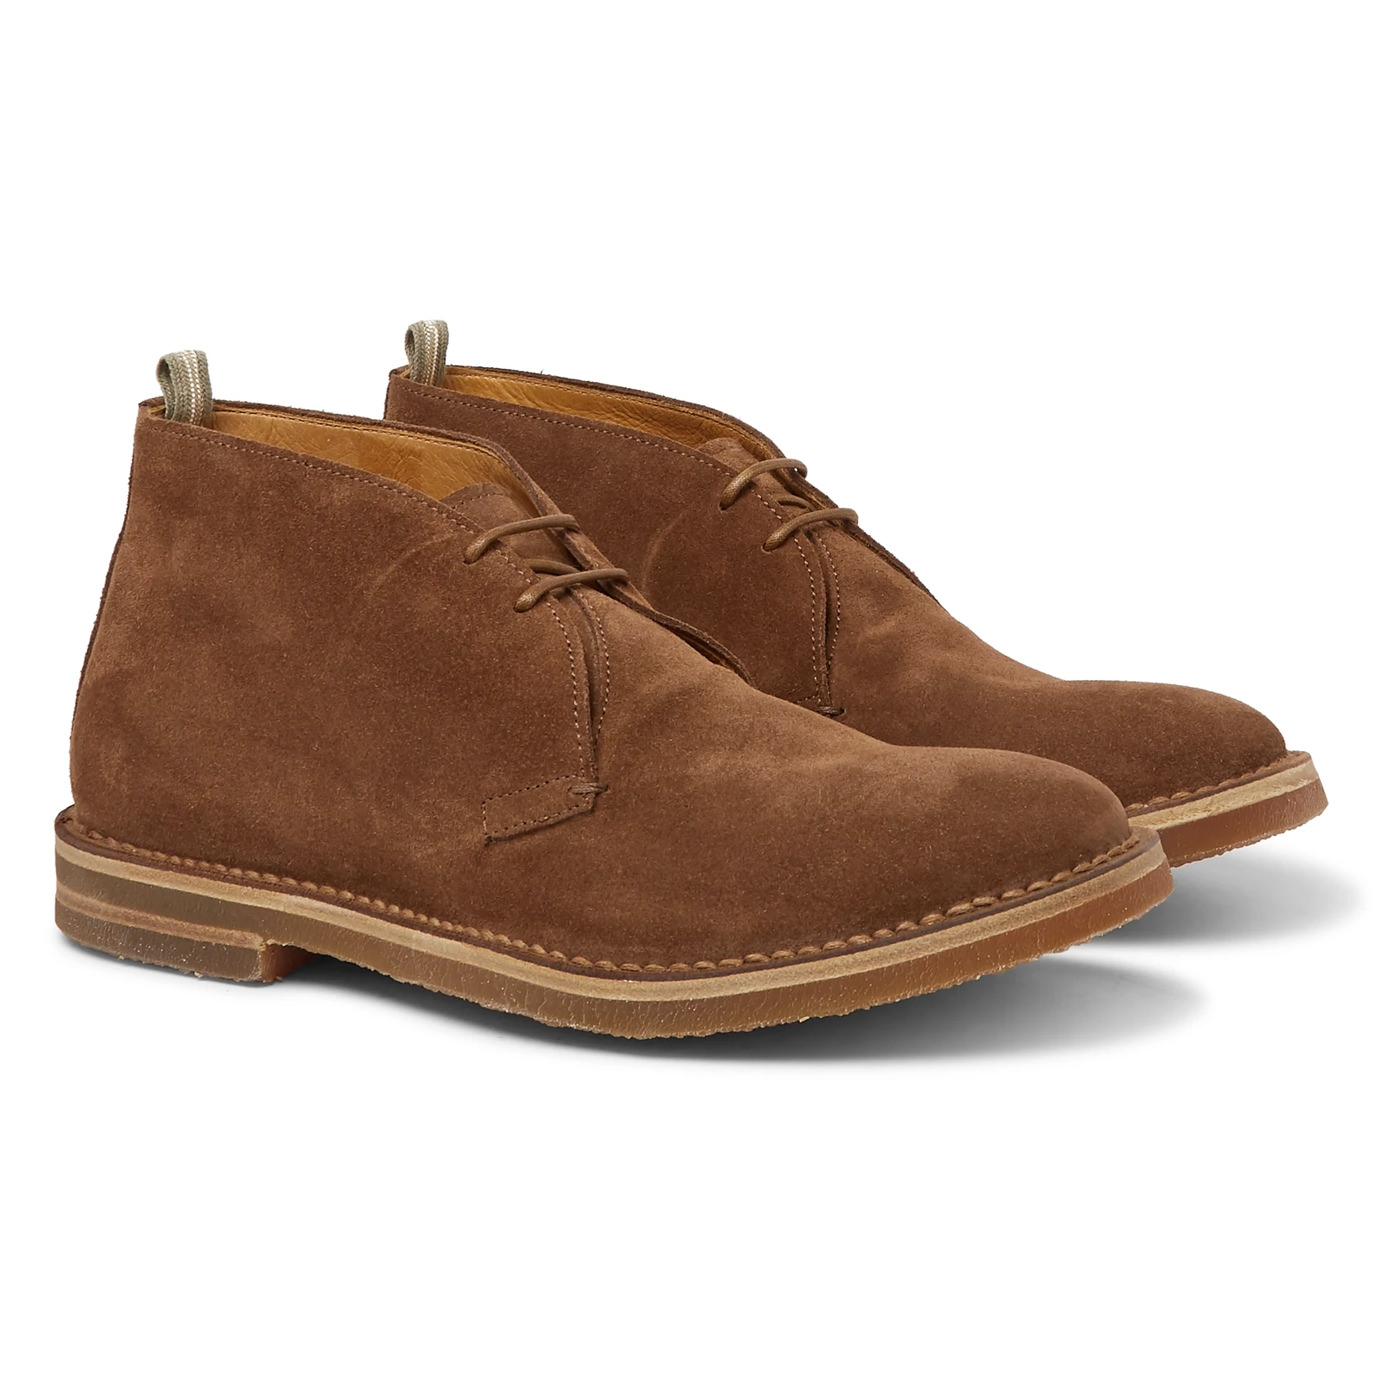 Style Mr Porter Chaussures Boots Daim Officine Creative Marron